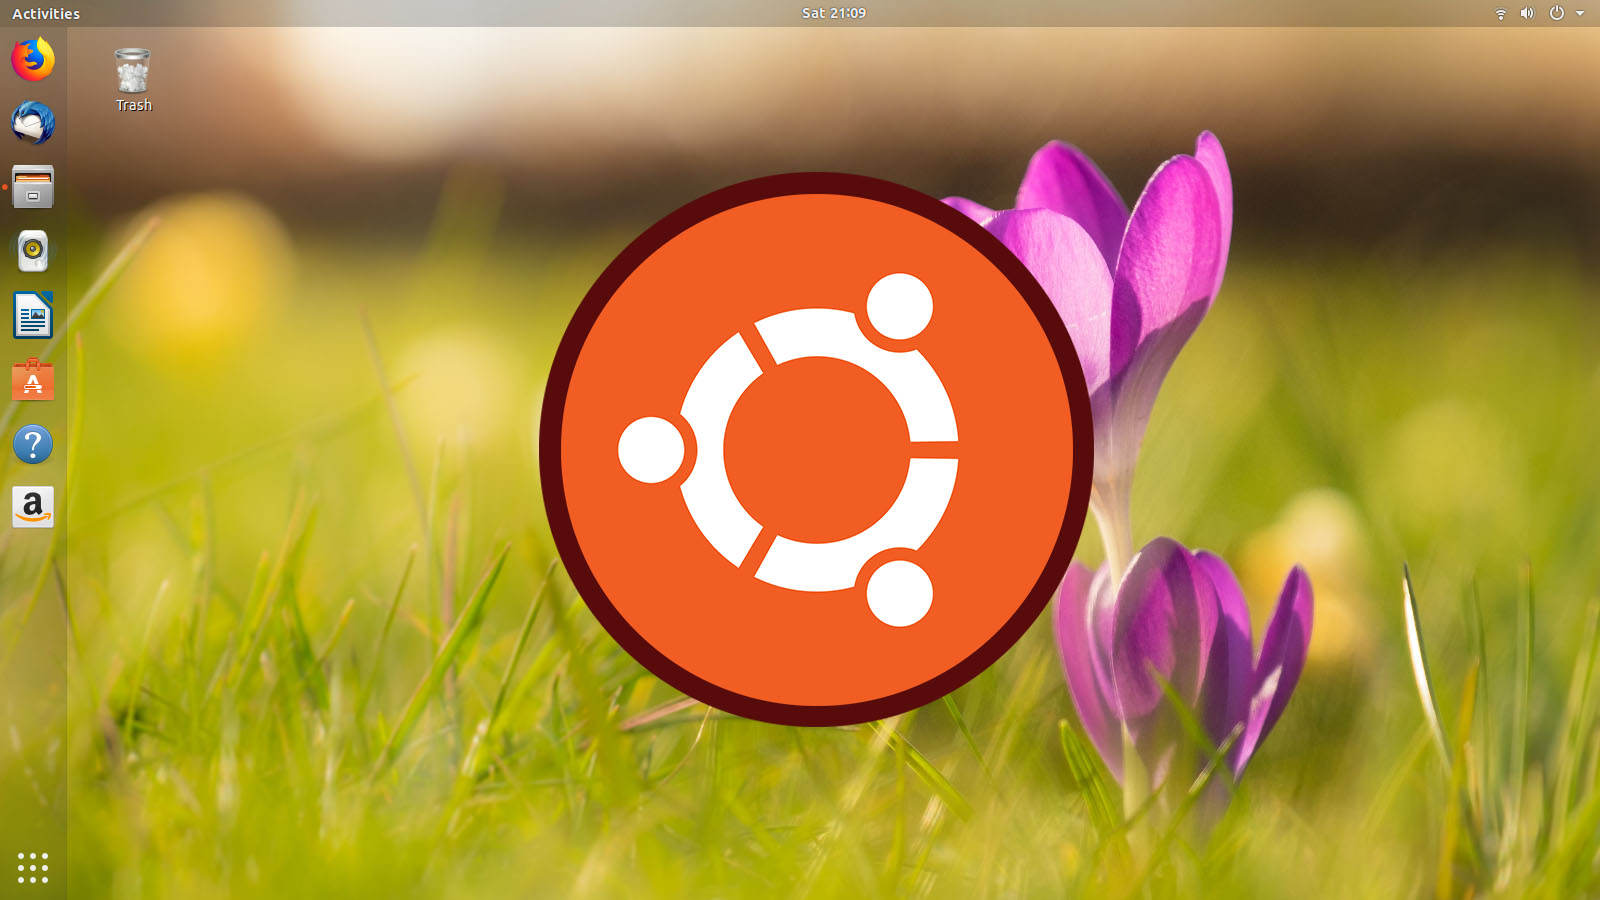 How To Change Background In Ubuntu 18.04 LTS (Bionic Beaver)